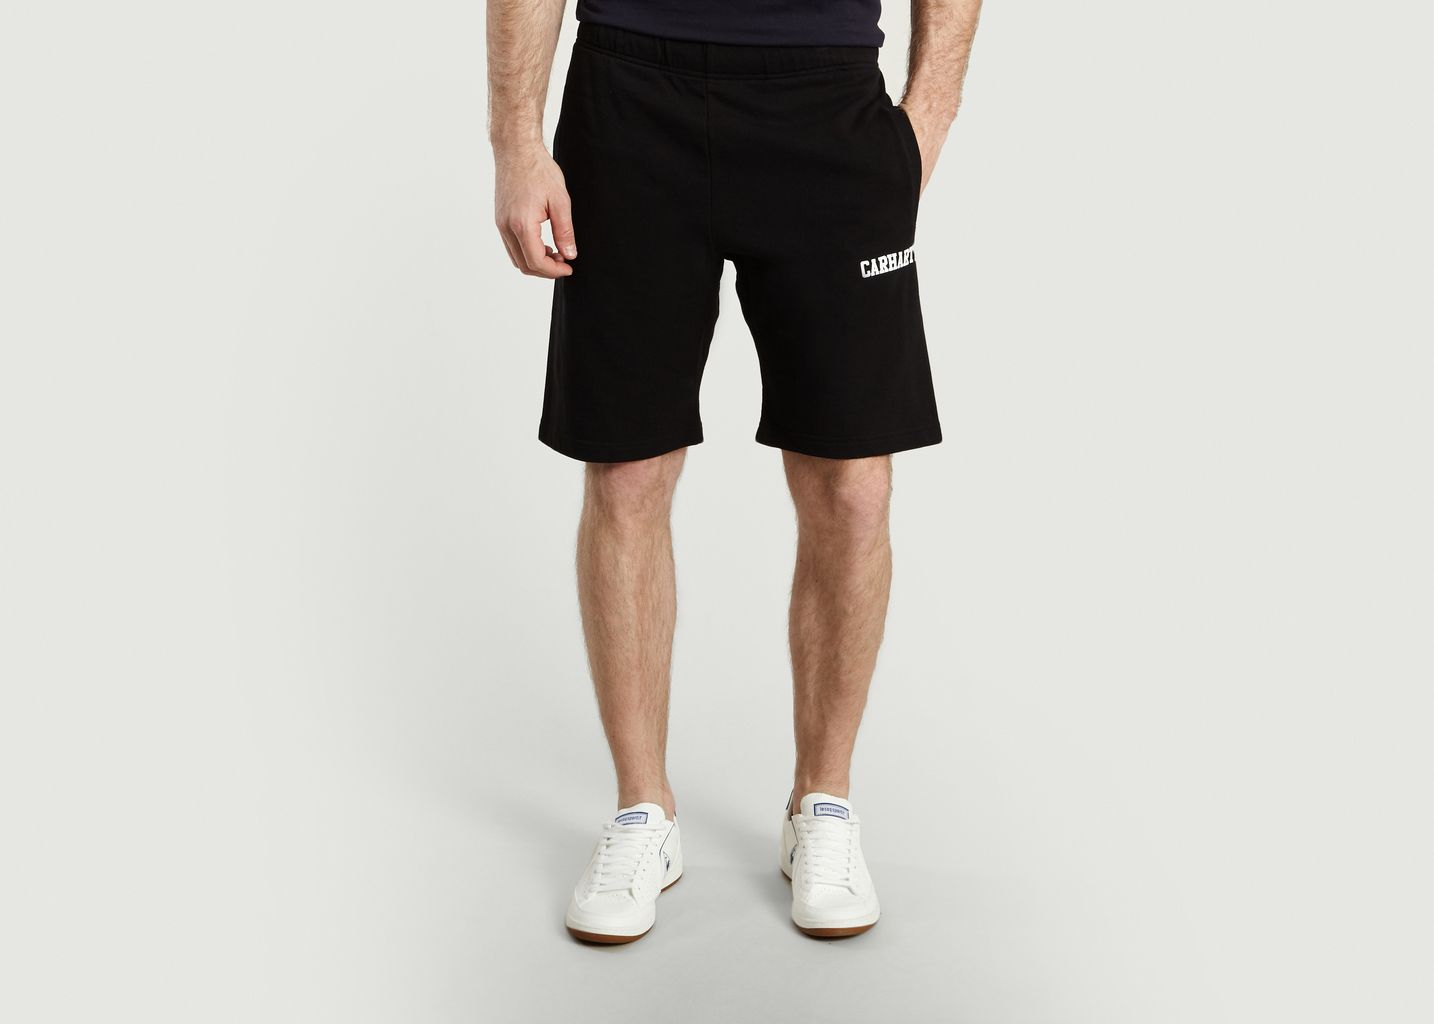 50 Soldes Short Sweat Carhartt Noir College À Wip L'exception 0rPdwqr